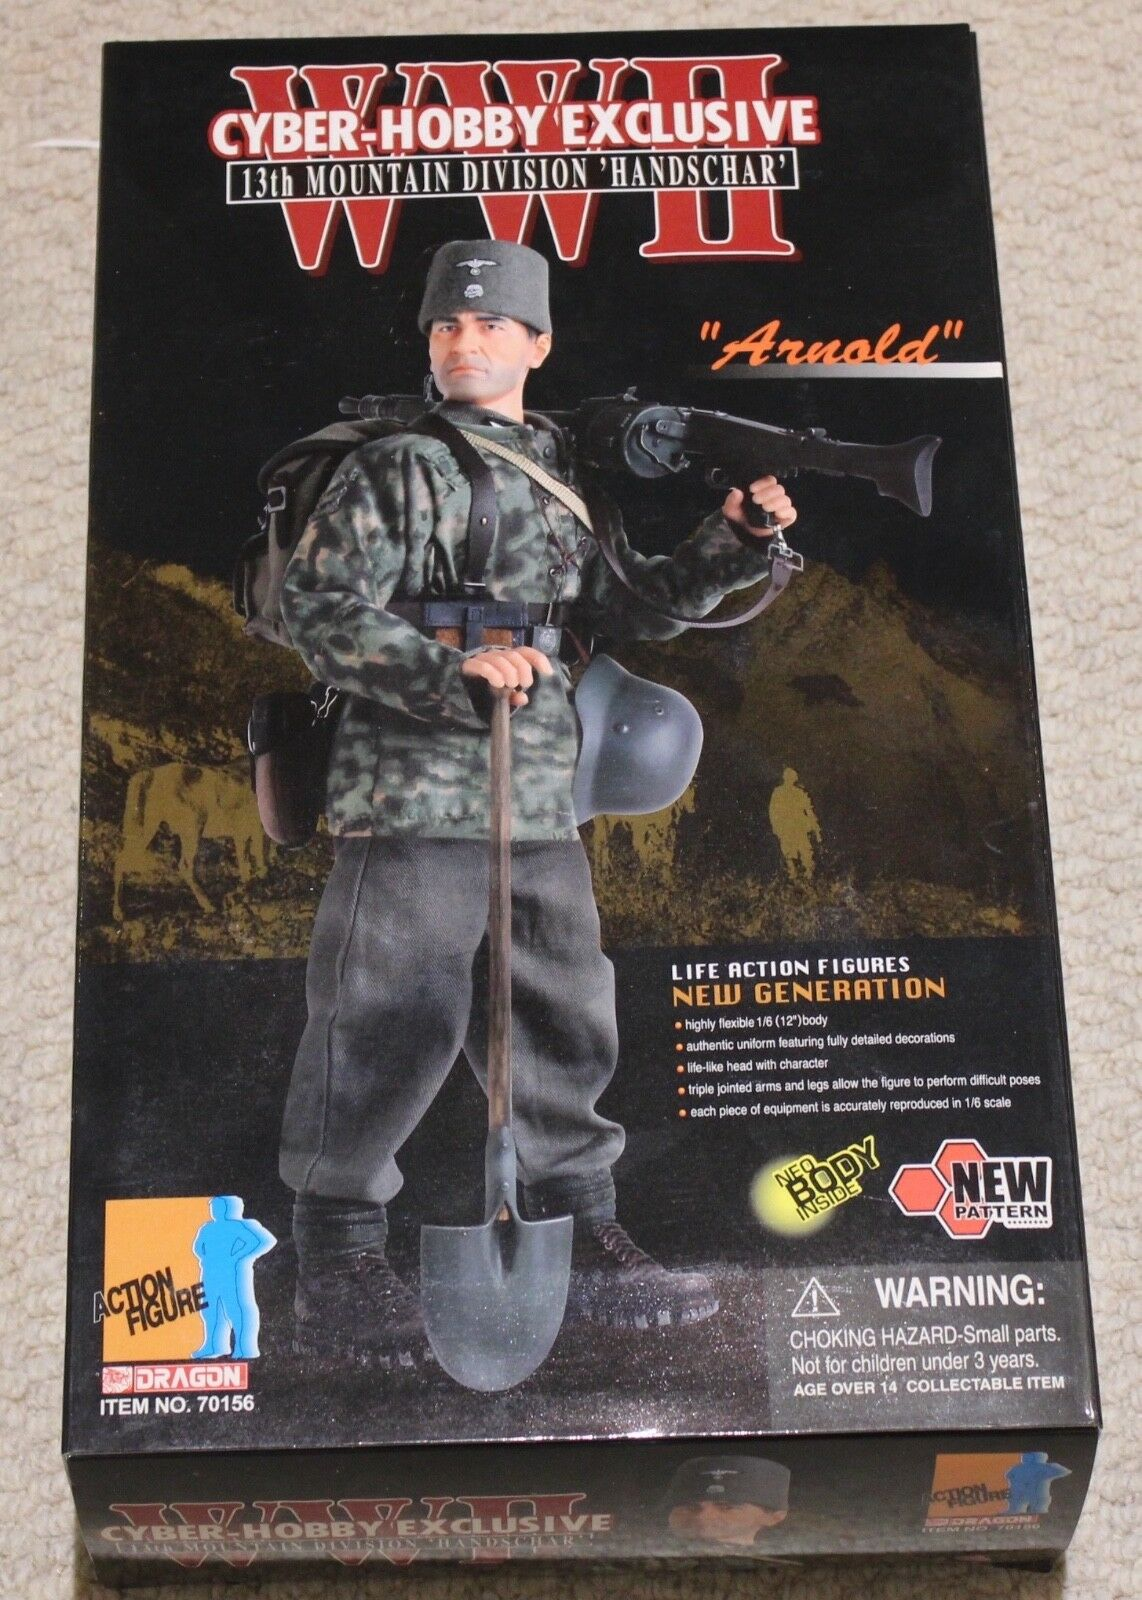 dragon action figure 1/6 ww11 german arnold 13th 12'' boxed did cyber hot toy